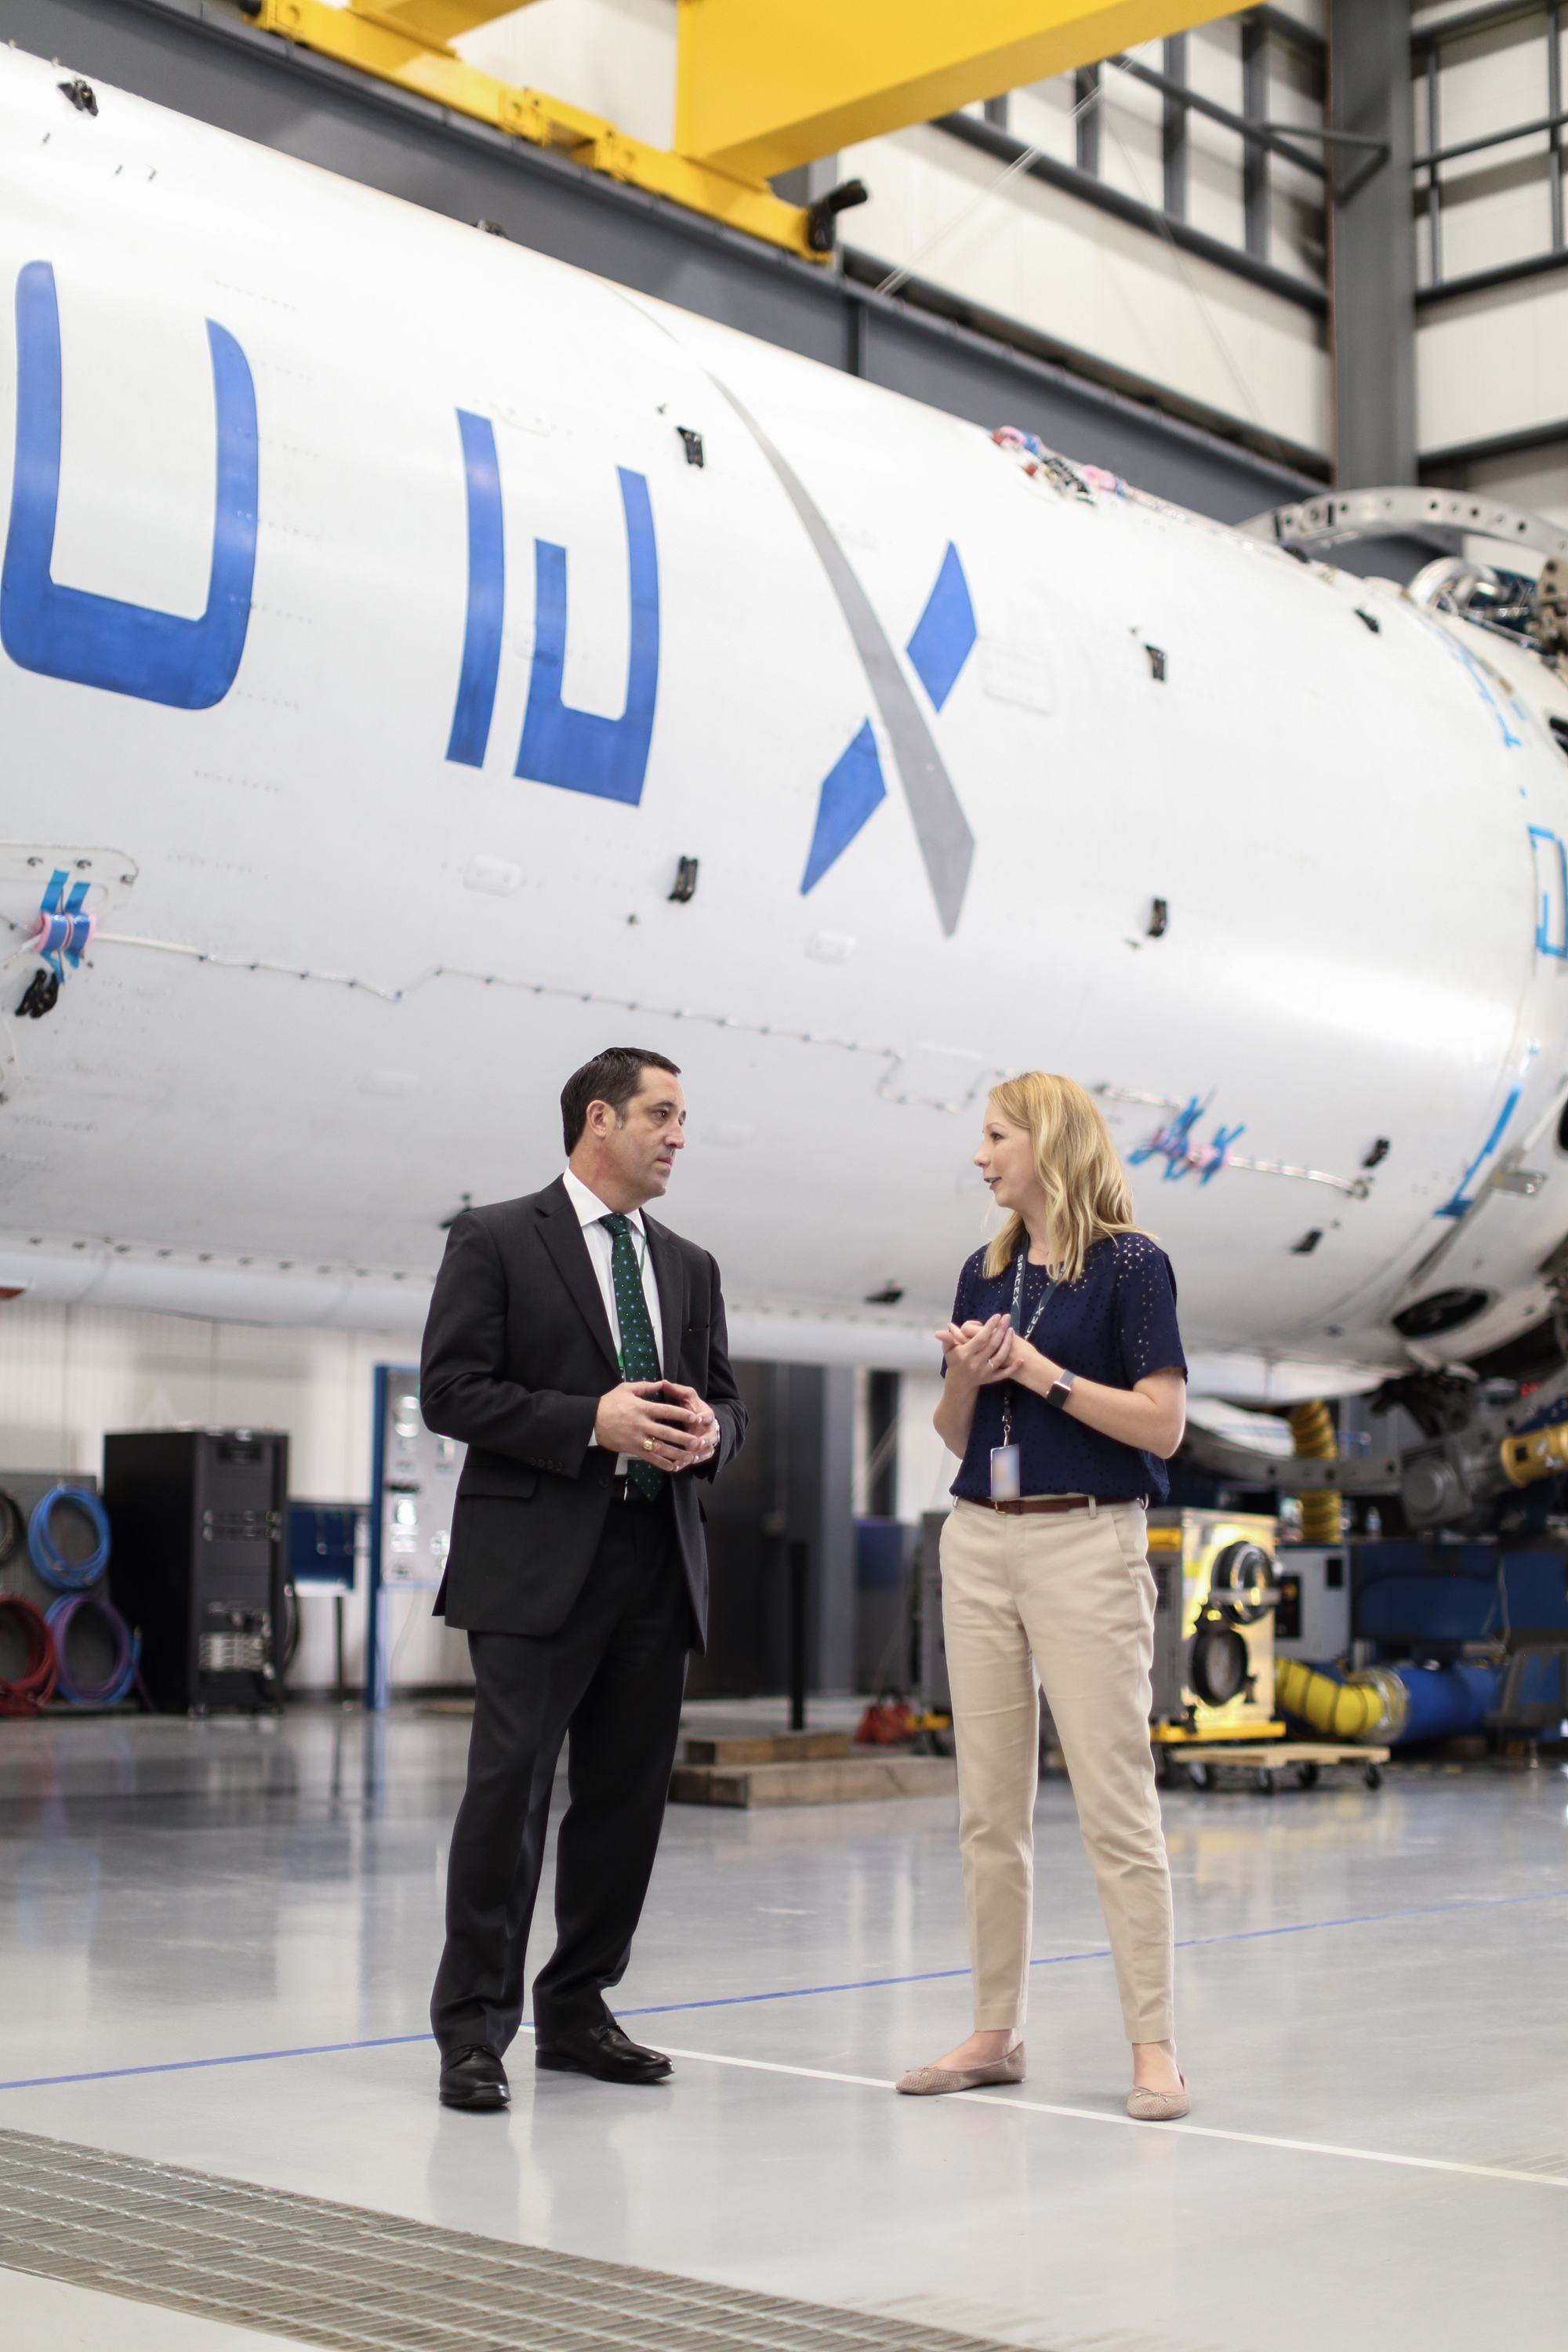 On October 5, 2017, Texas Comptroller Glenn Hegar visited Space-X in McGregor, Texas.